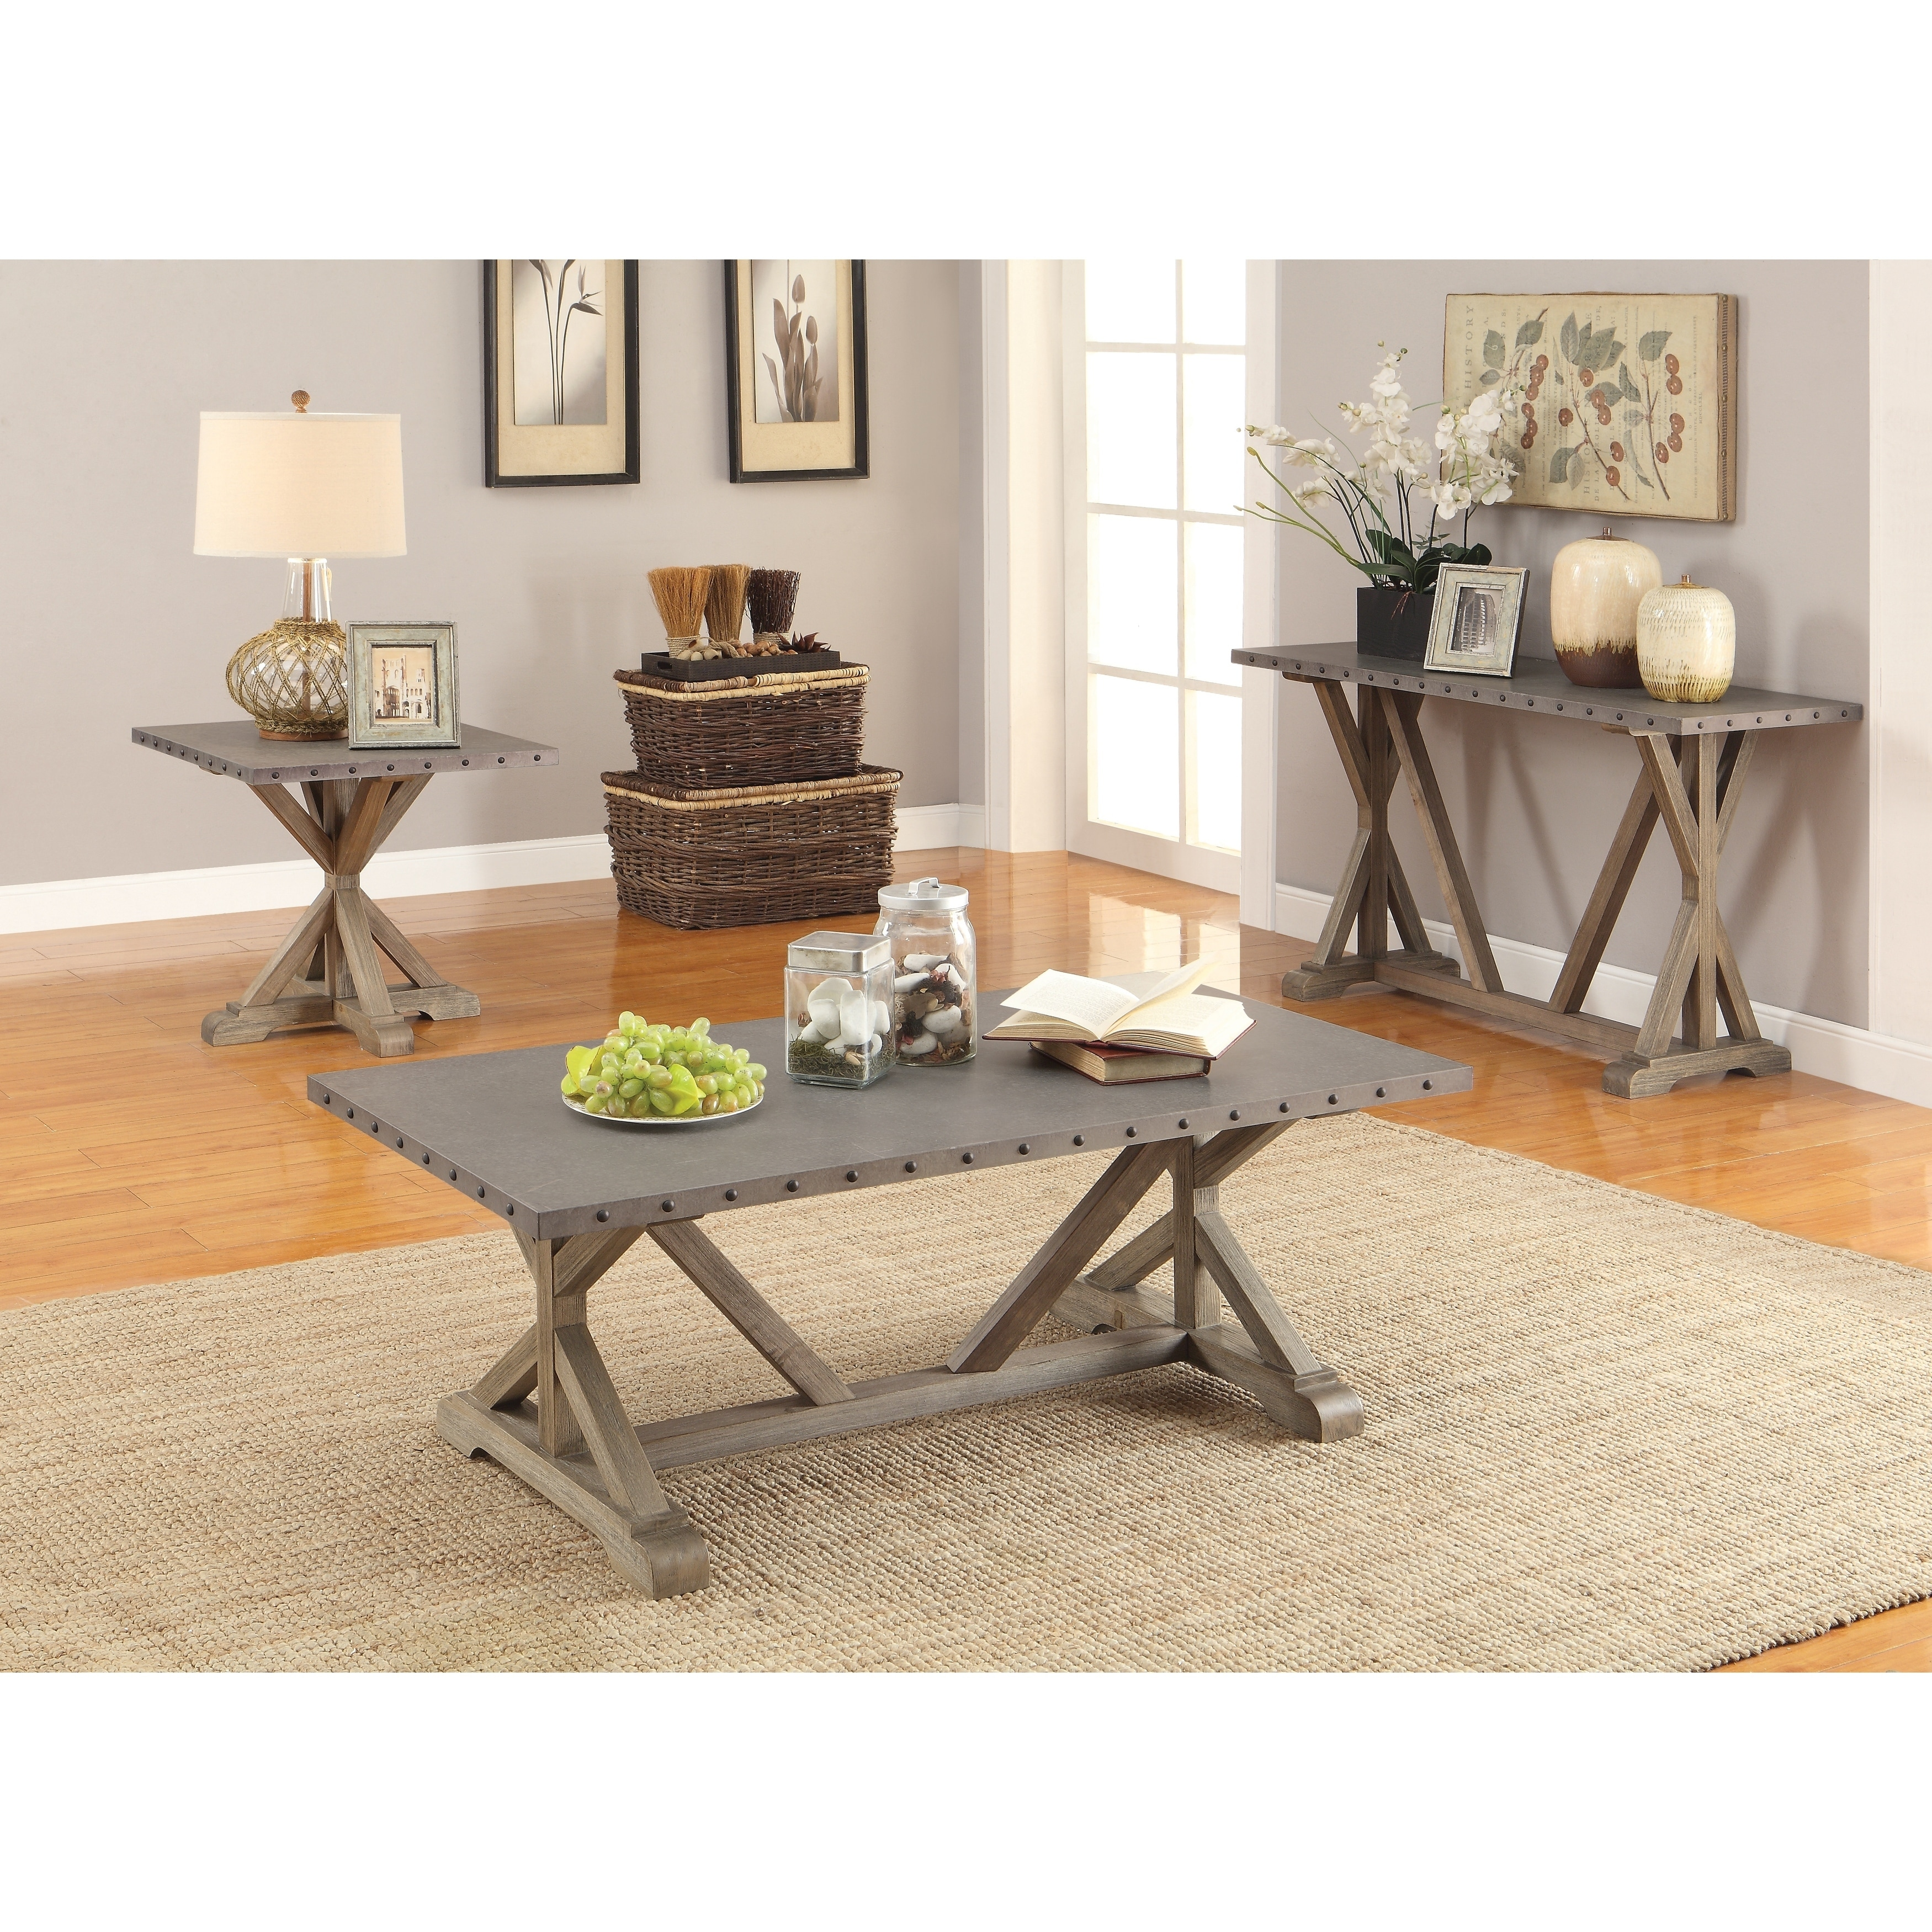 Driftwood Sofa Table On Free Shipping Today 21338983